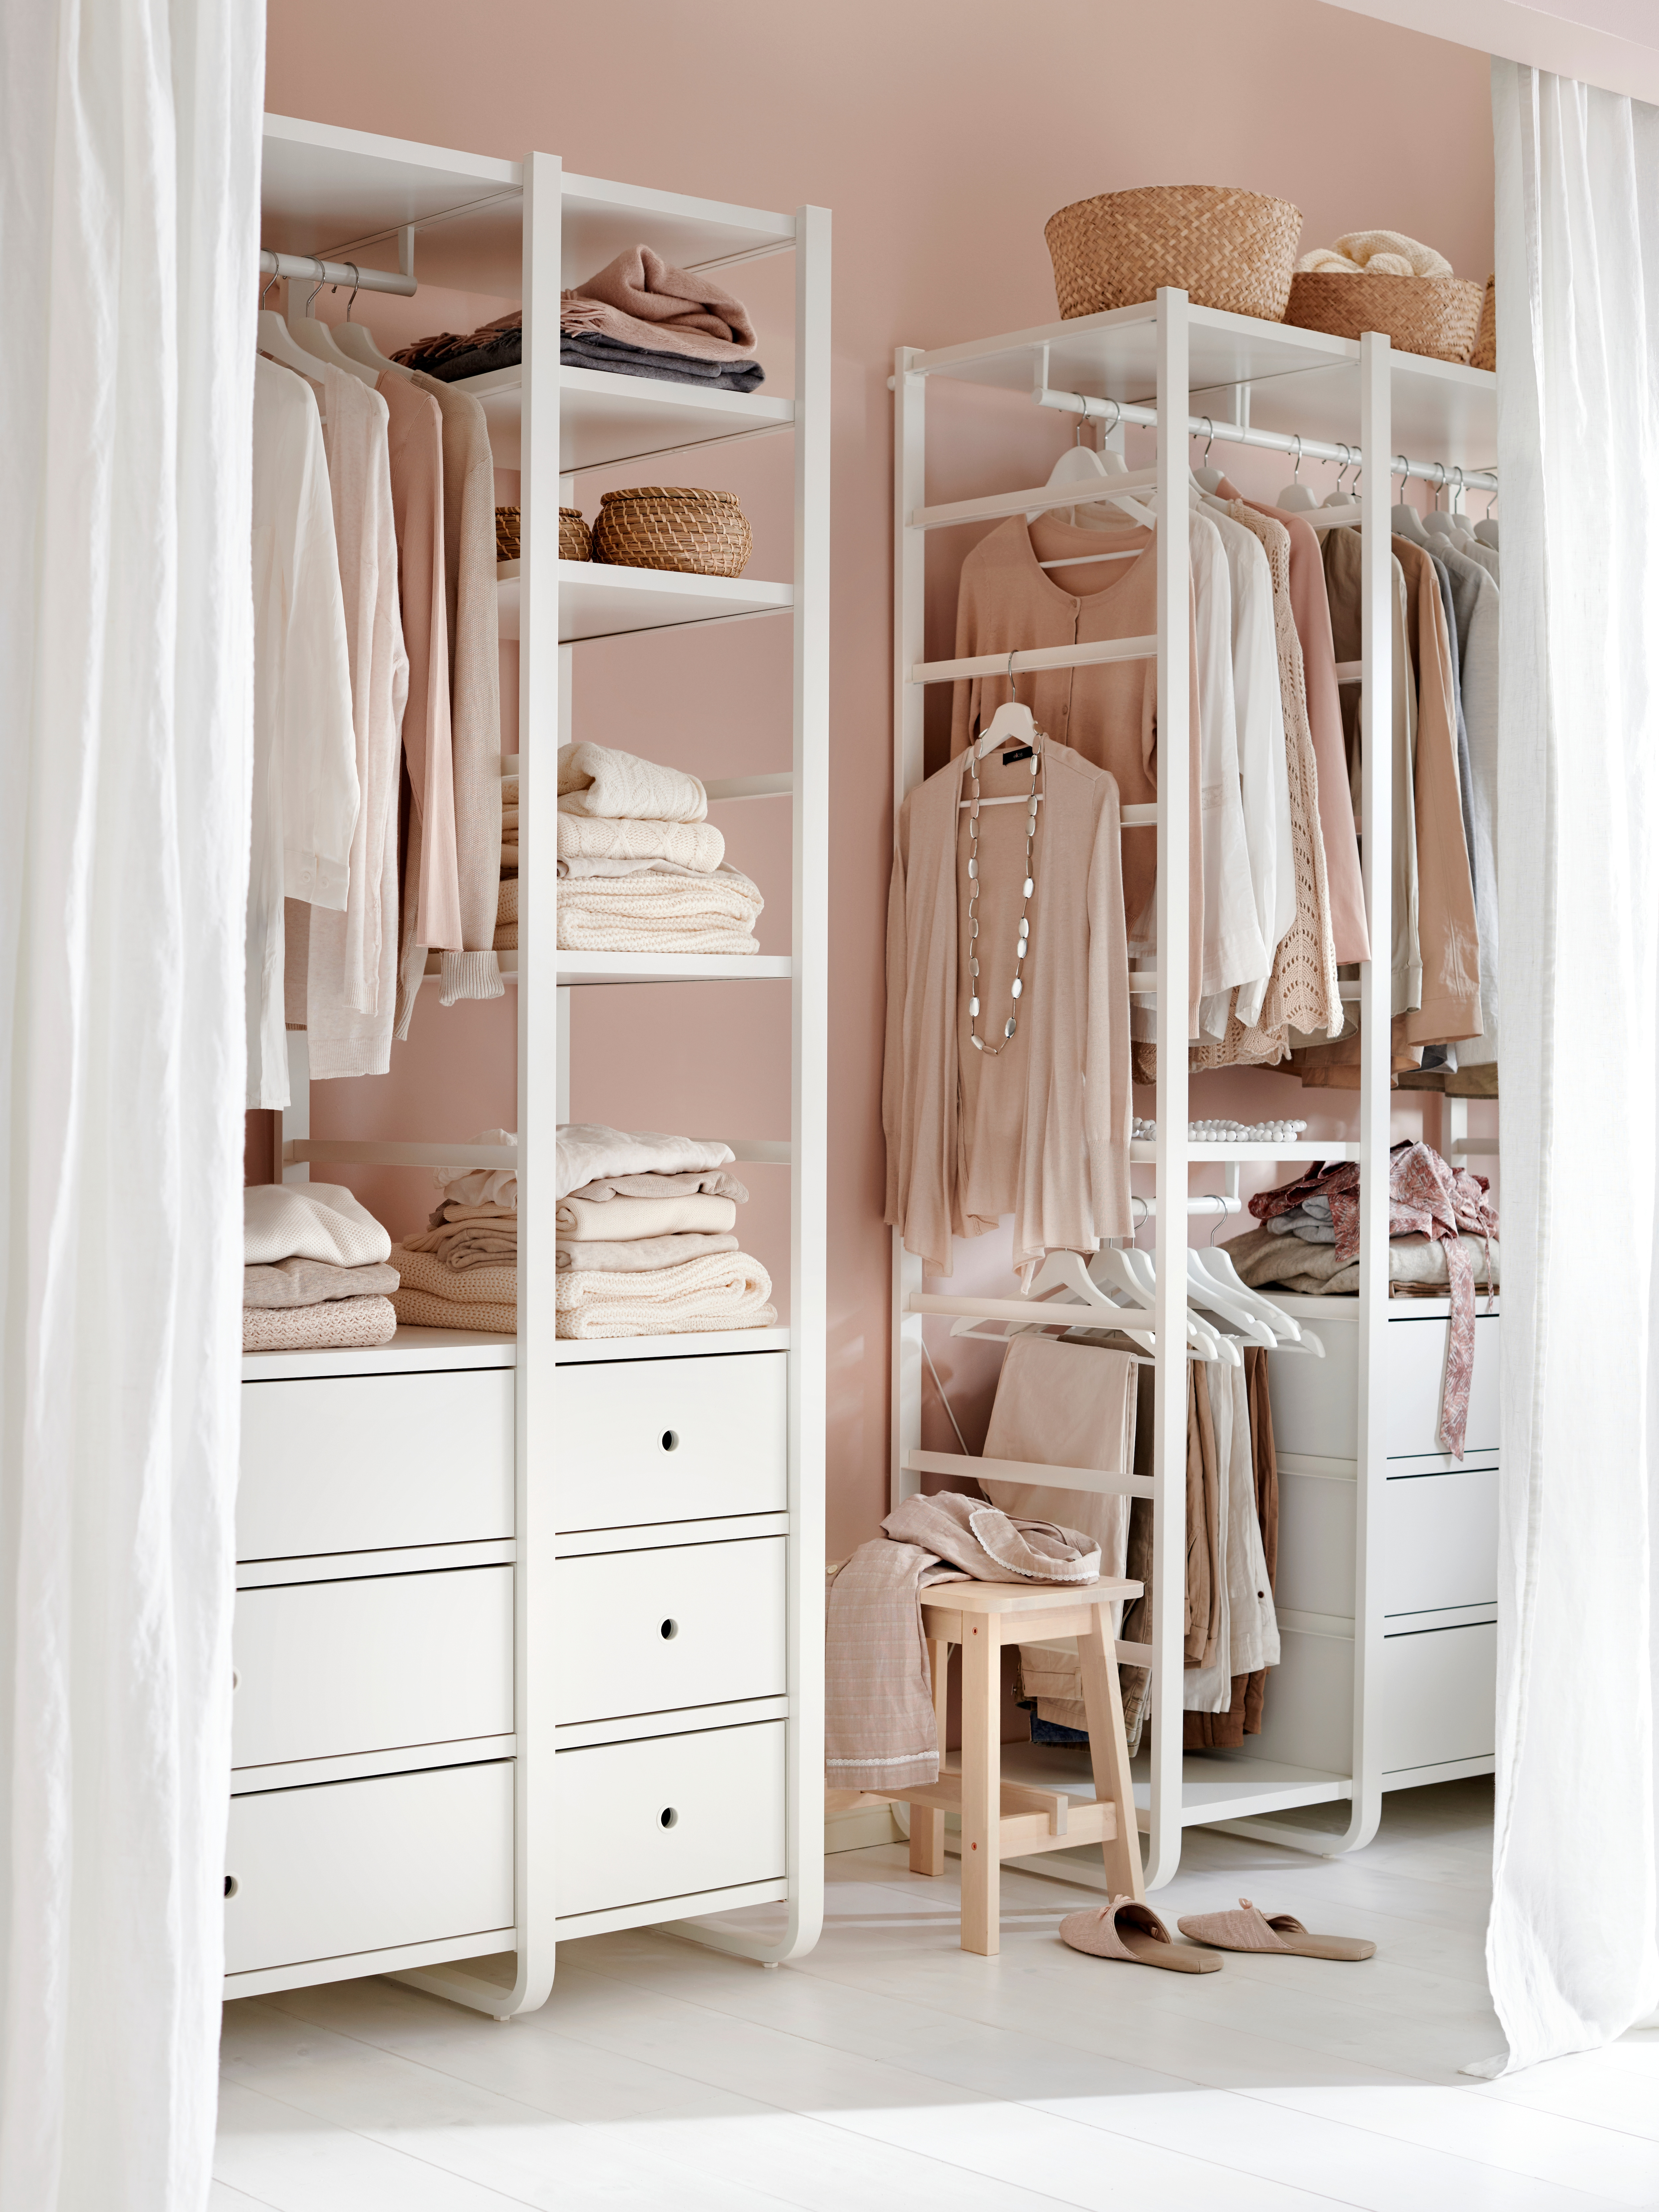 Two, white ELVARLI three-section storage units with drawers are filled with clothes, against a wall with a stool in between.